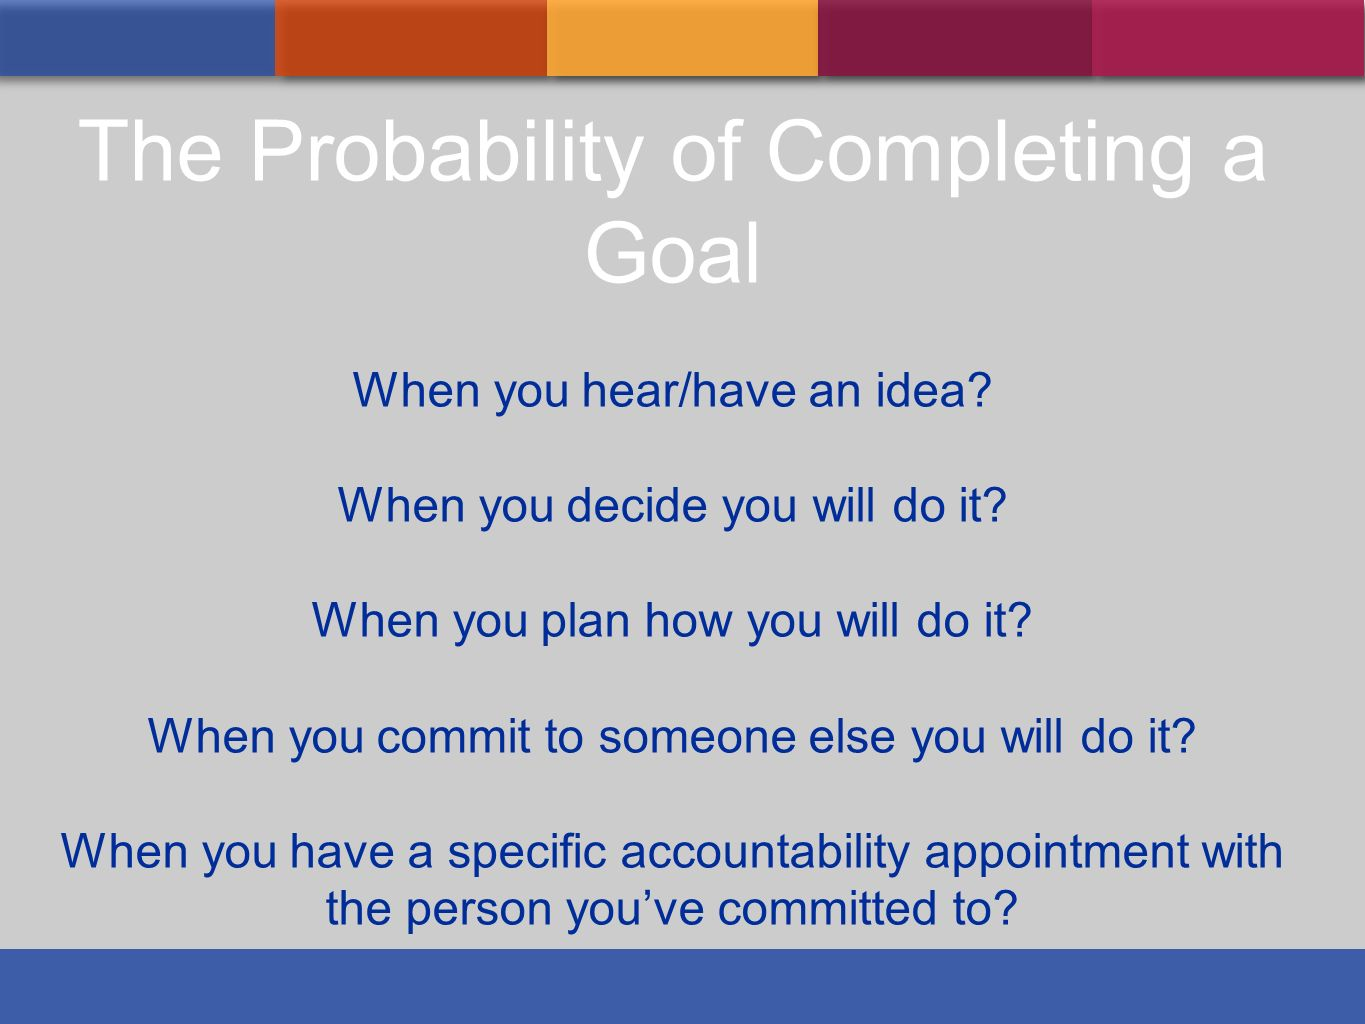 The Probability of Completing a Goal When you hear/have an idea? When you decide you will do it? When you plan how you will do it? When you commit to